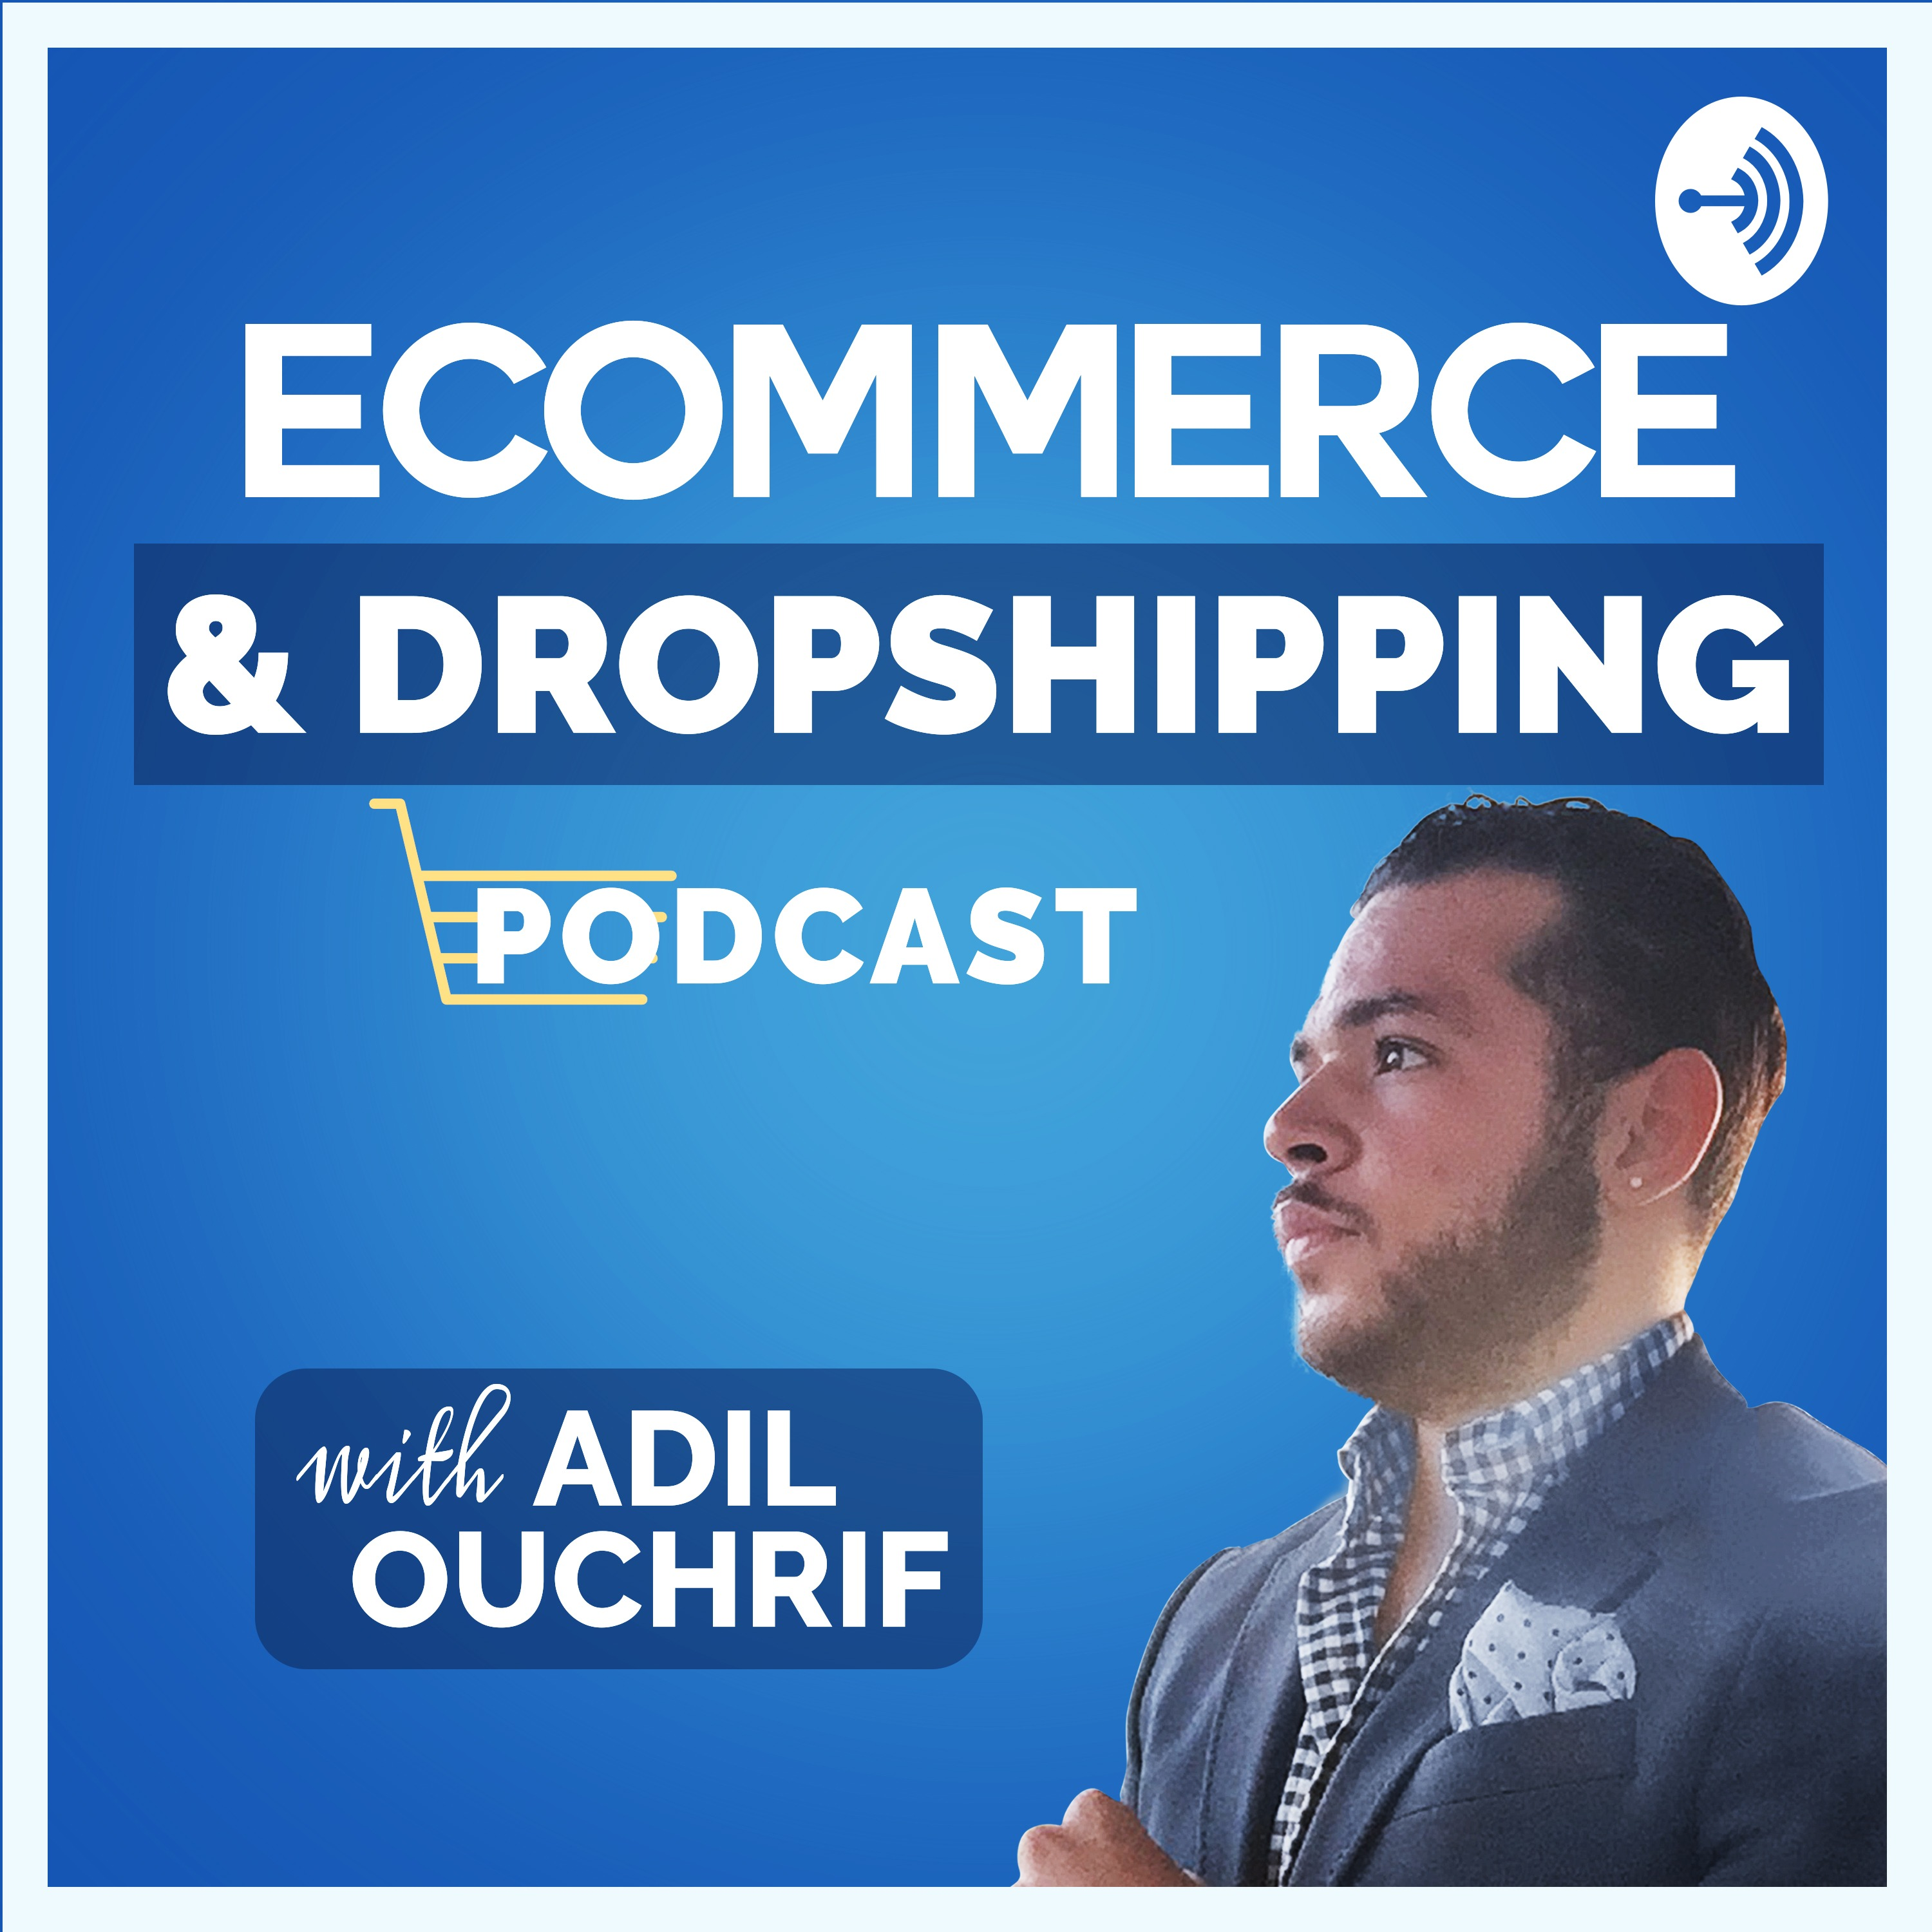 eCommerce & Dropshipping Podcast